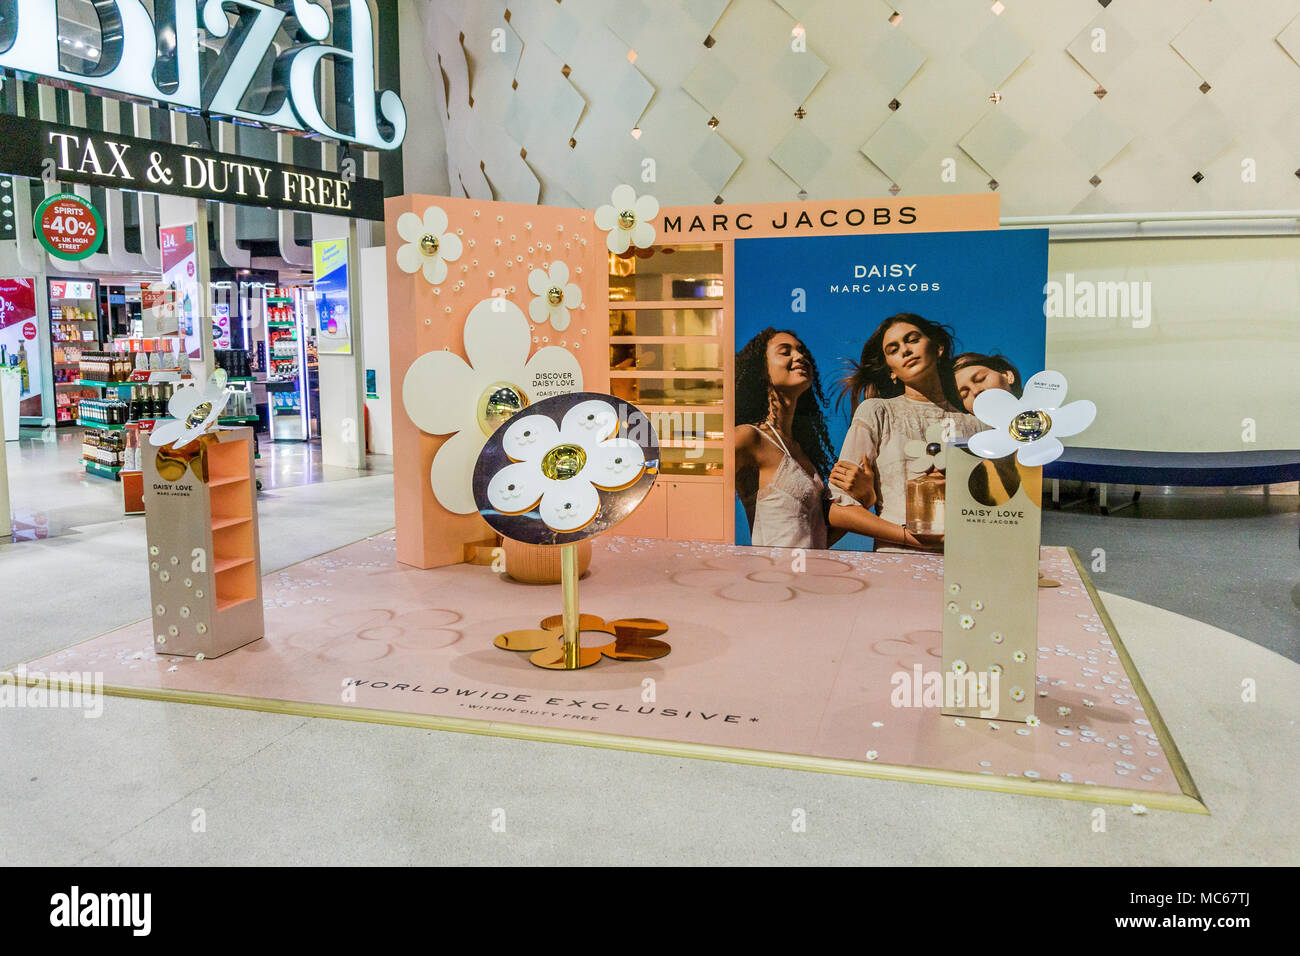 Marc Jacobs, Daisy perfume floor display at Manchester Airport, England, Uk in April 2018. - Stock Image